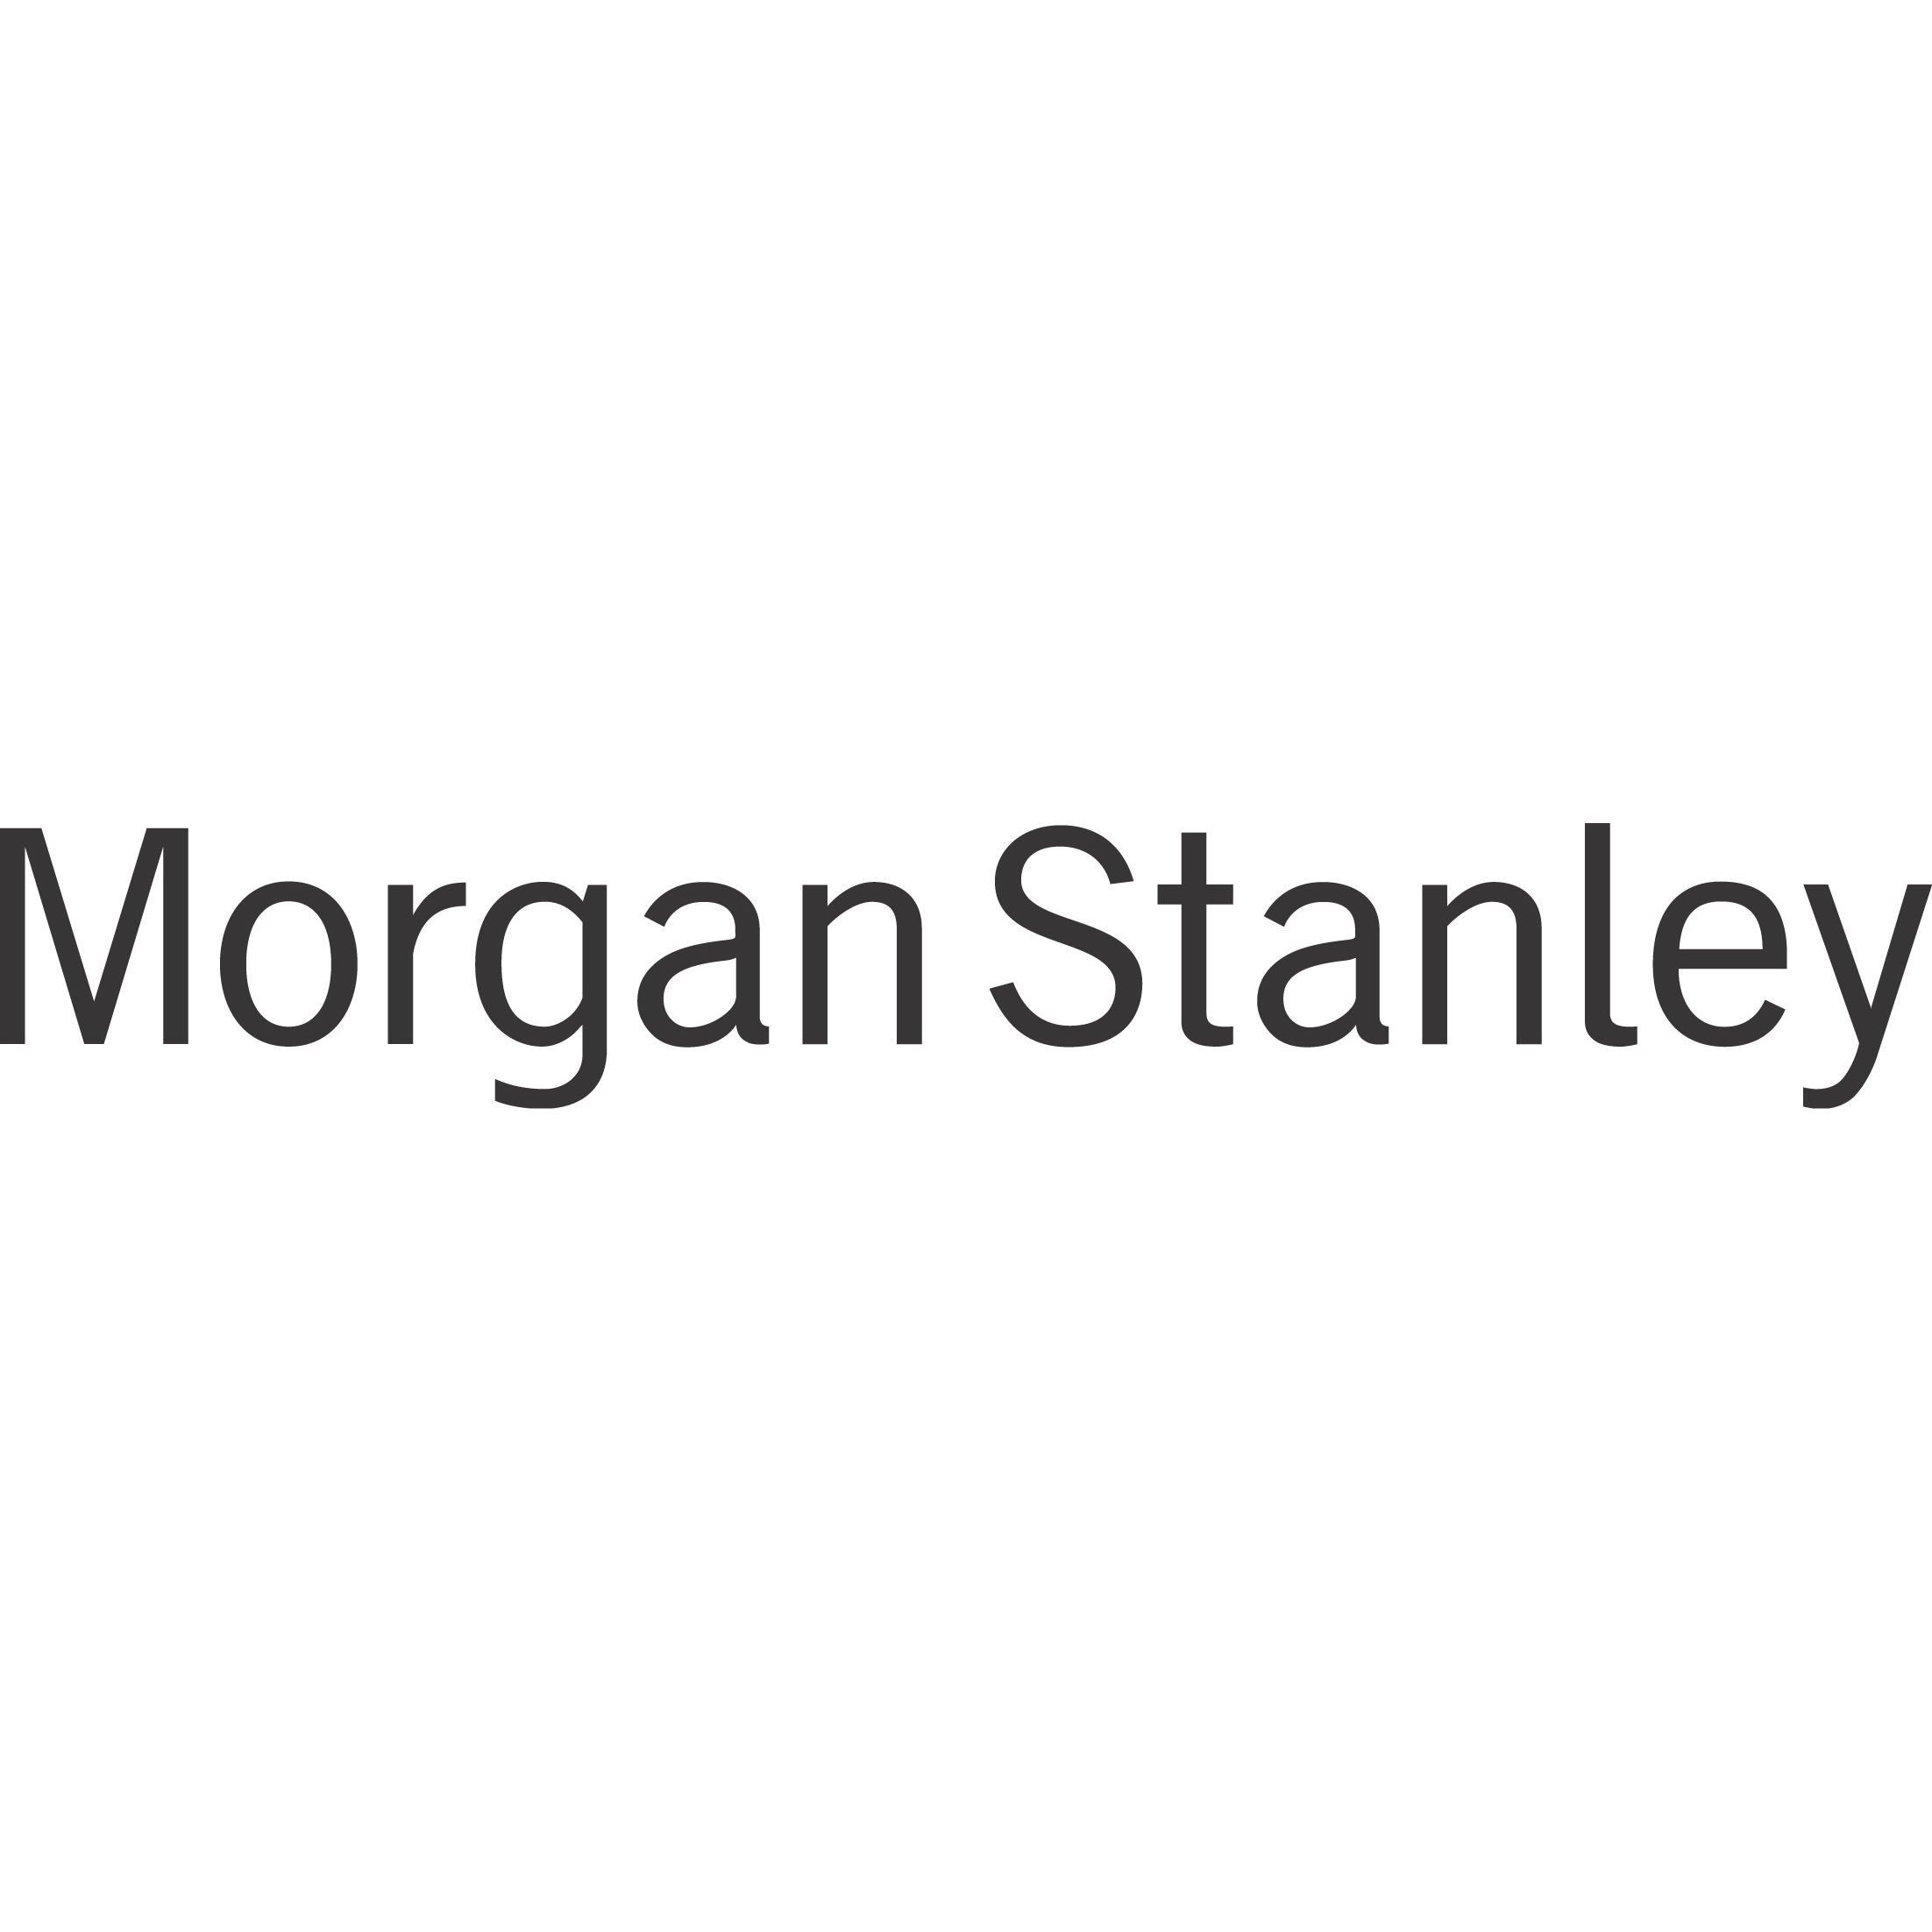 Chad Michael Rother - Morgan Stanley | Financial Advisor in Oklahoma City,Oklahoma